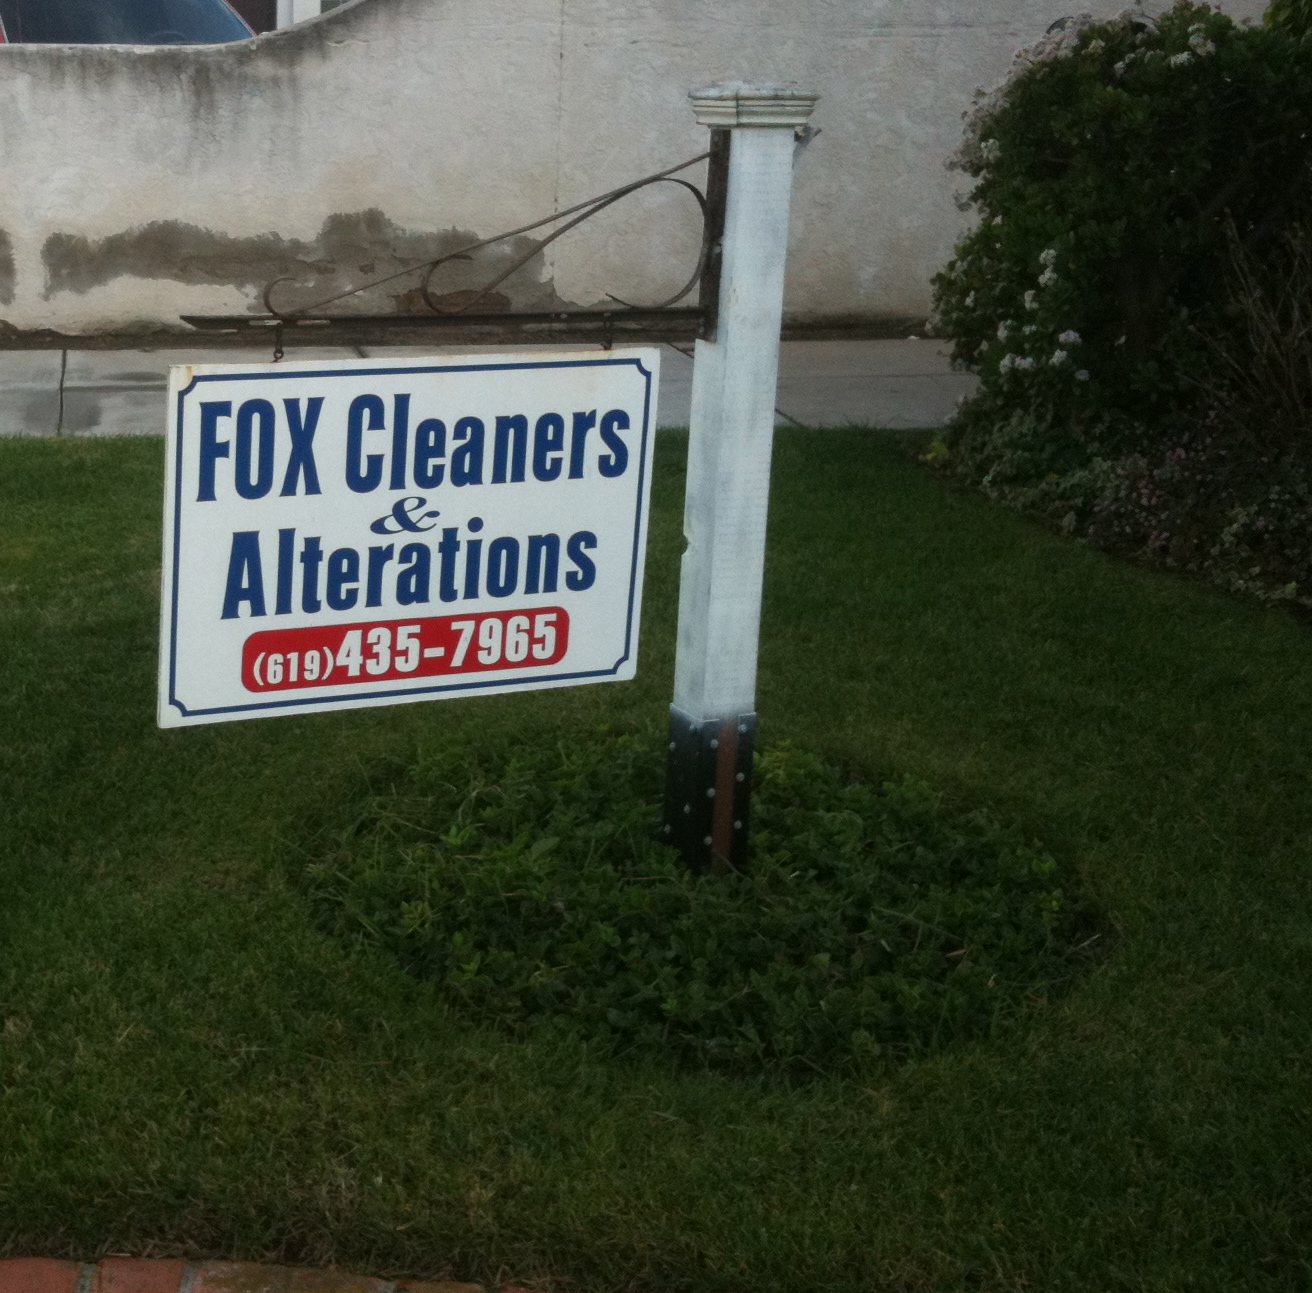 Have a Dirty Fox?